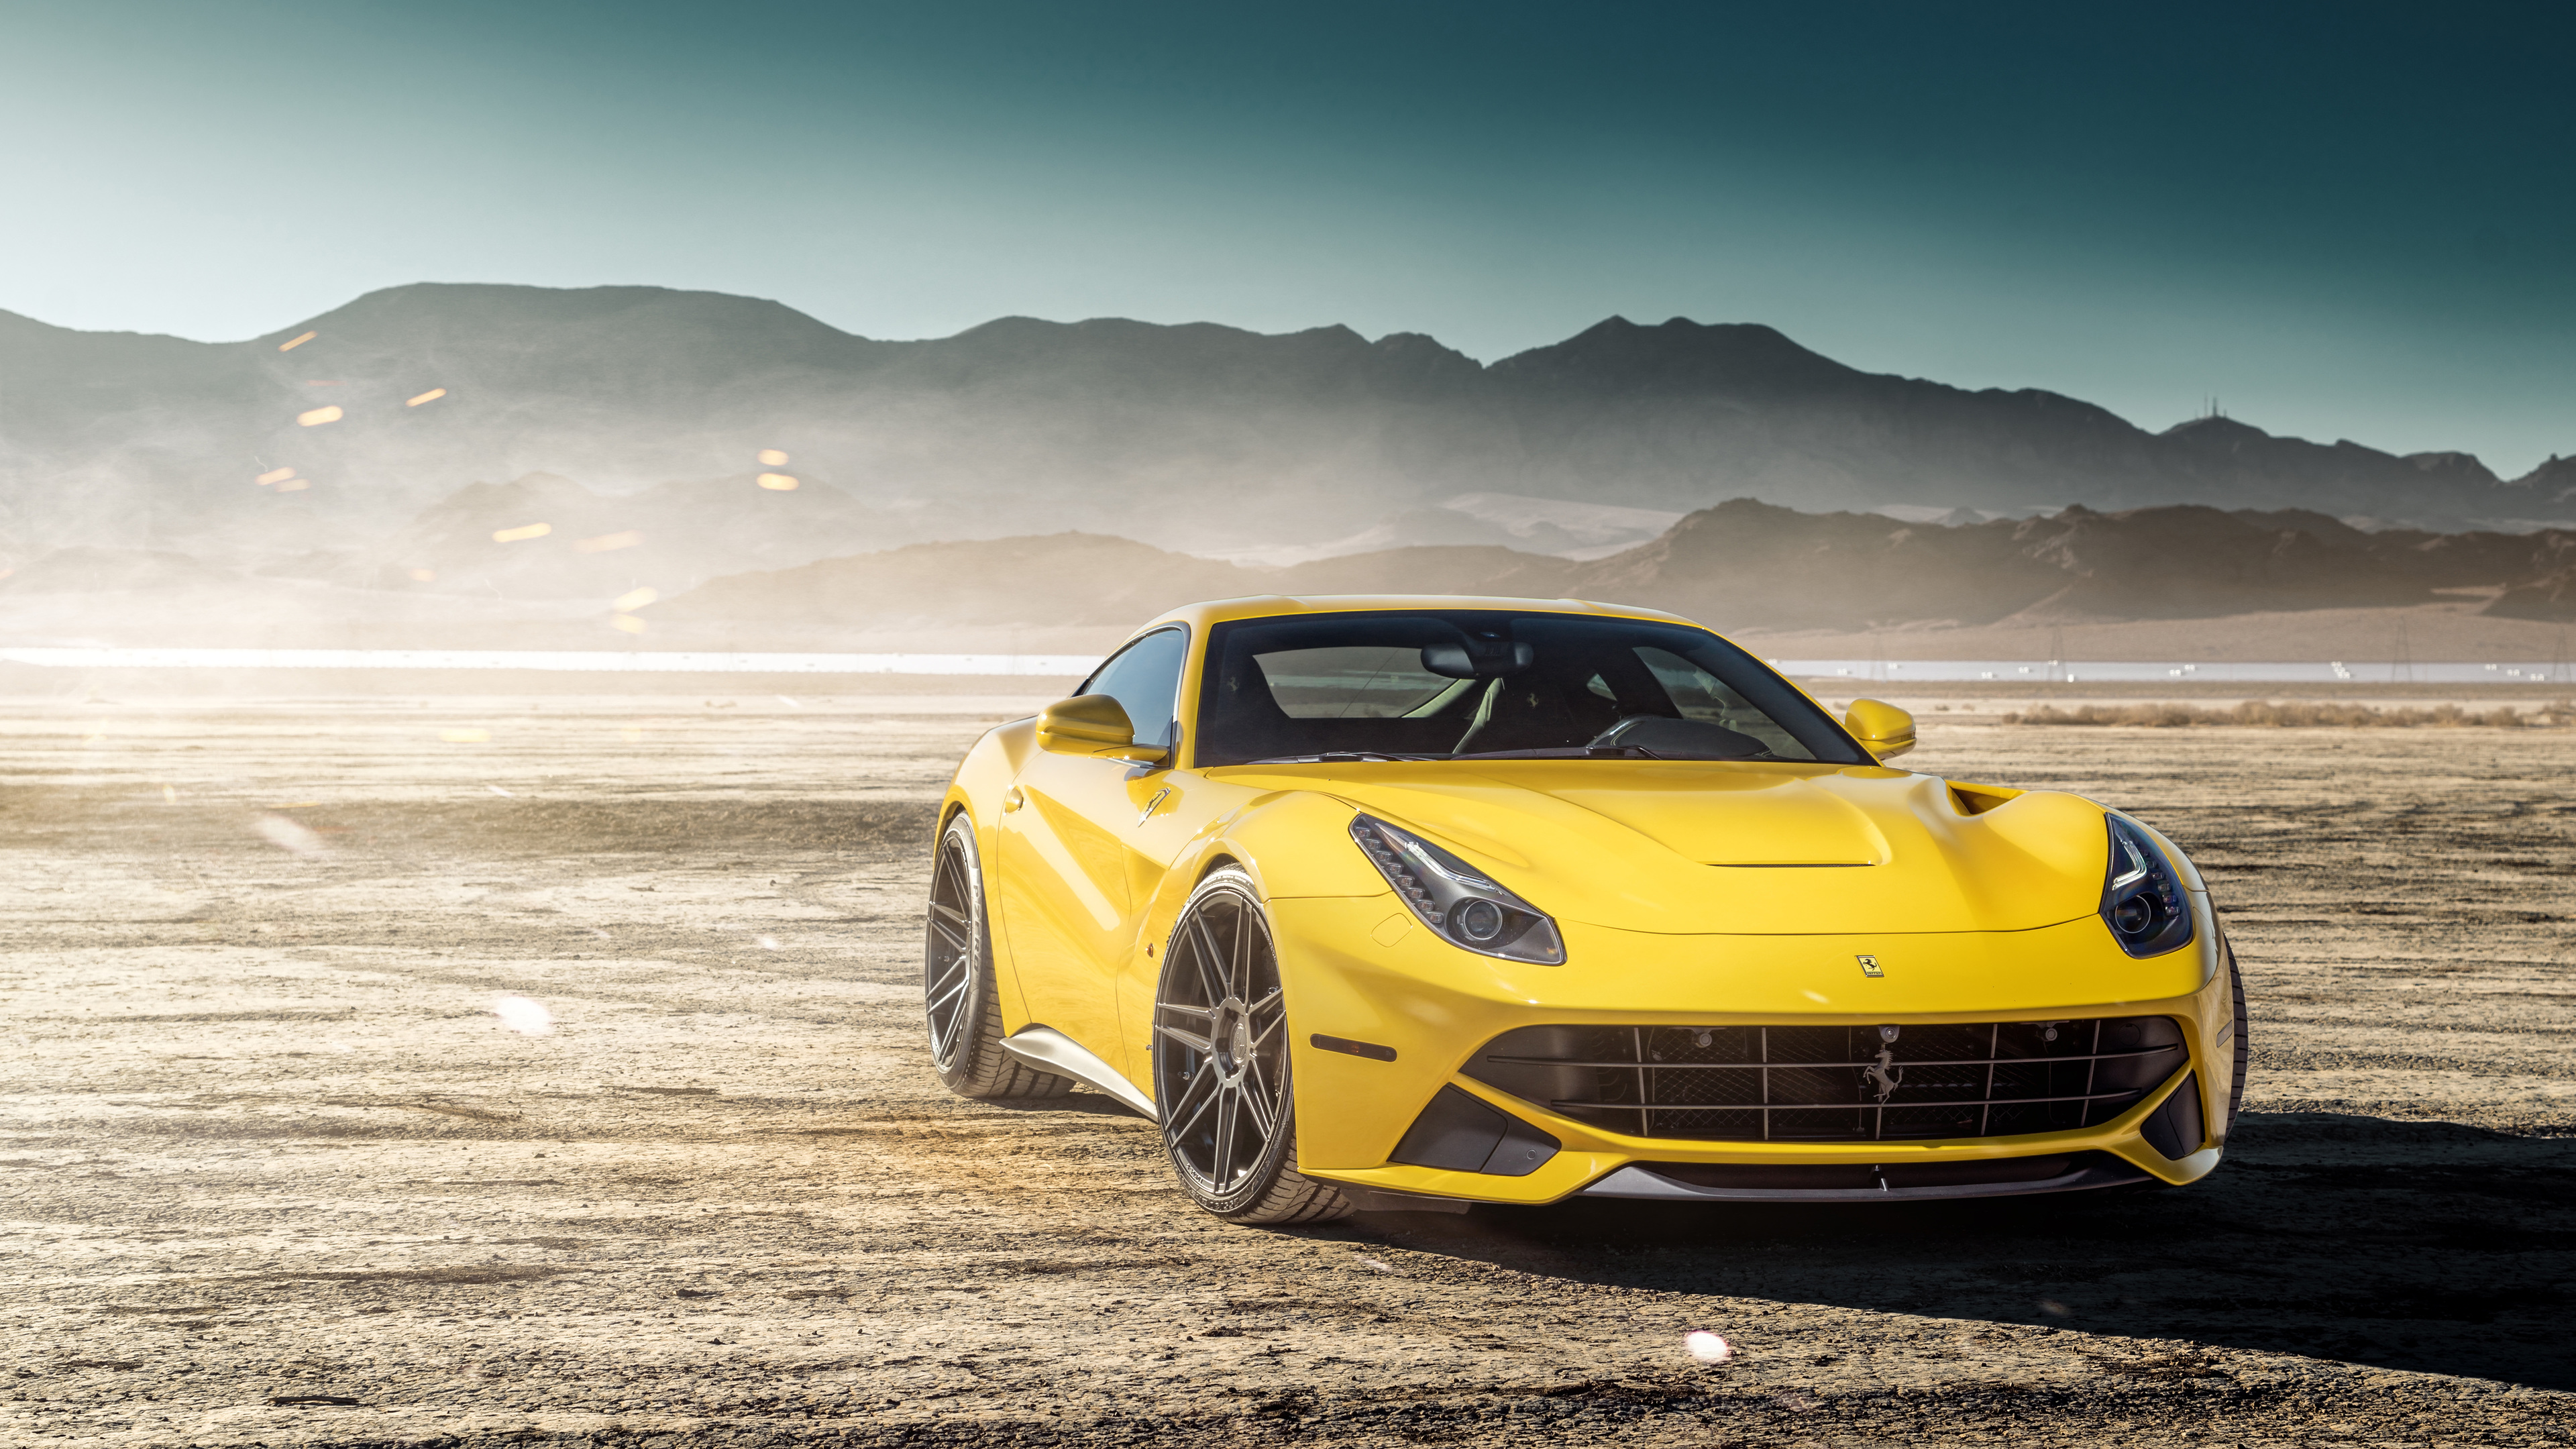 yellow ferrari f12 4k 1547936803 - Yellow Ferrari F12 4k - yellow wallpapers, hd-wallpapers, ferrari wallpapers, cars wallpapers, 5k wallpapers, 4k-wallpapers